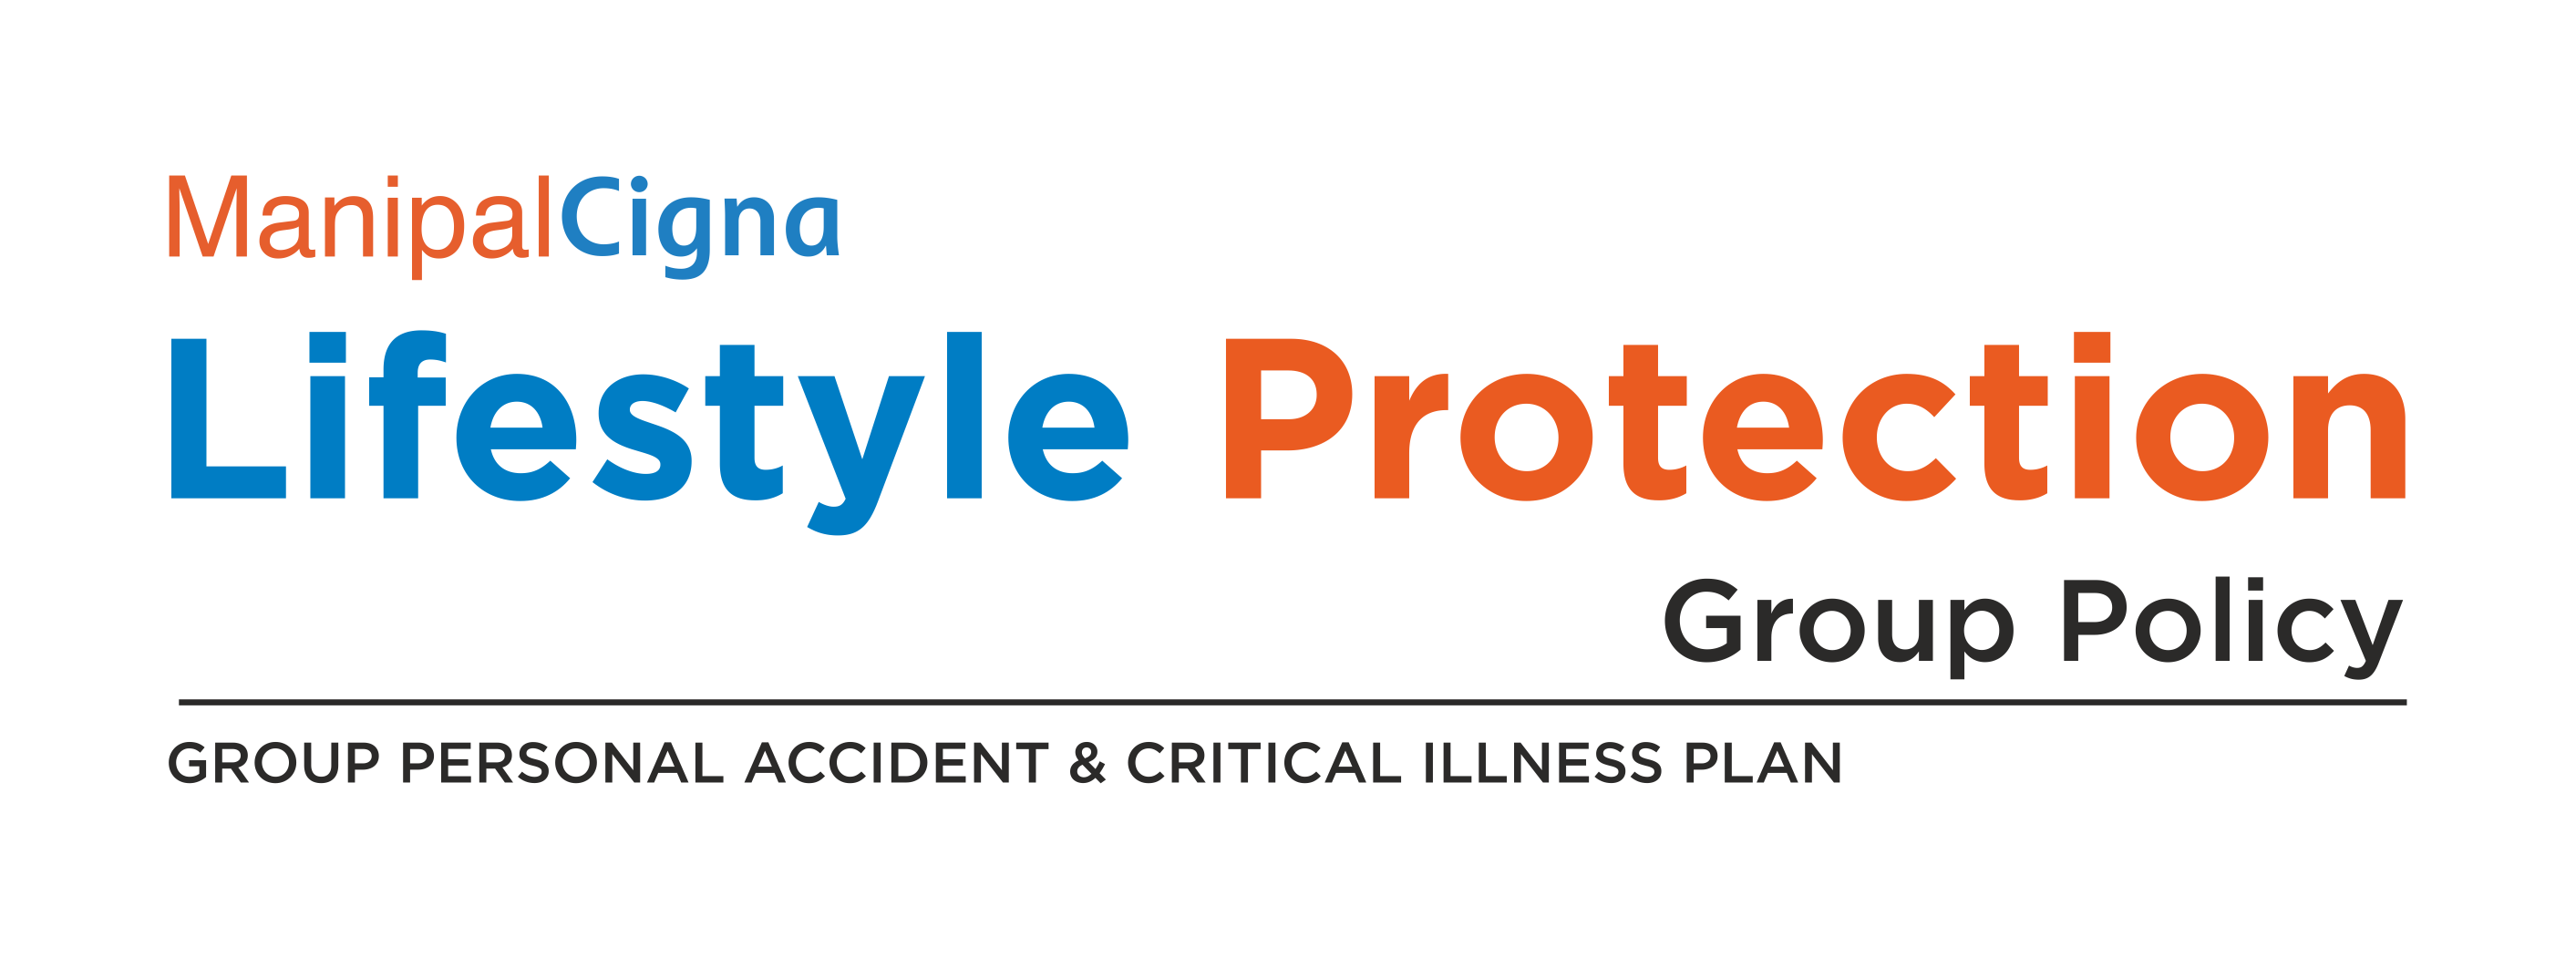 Lifestyle Protection Group Policy